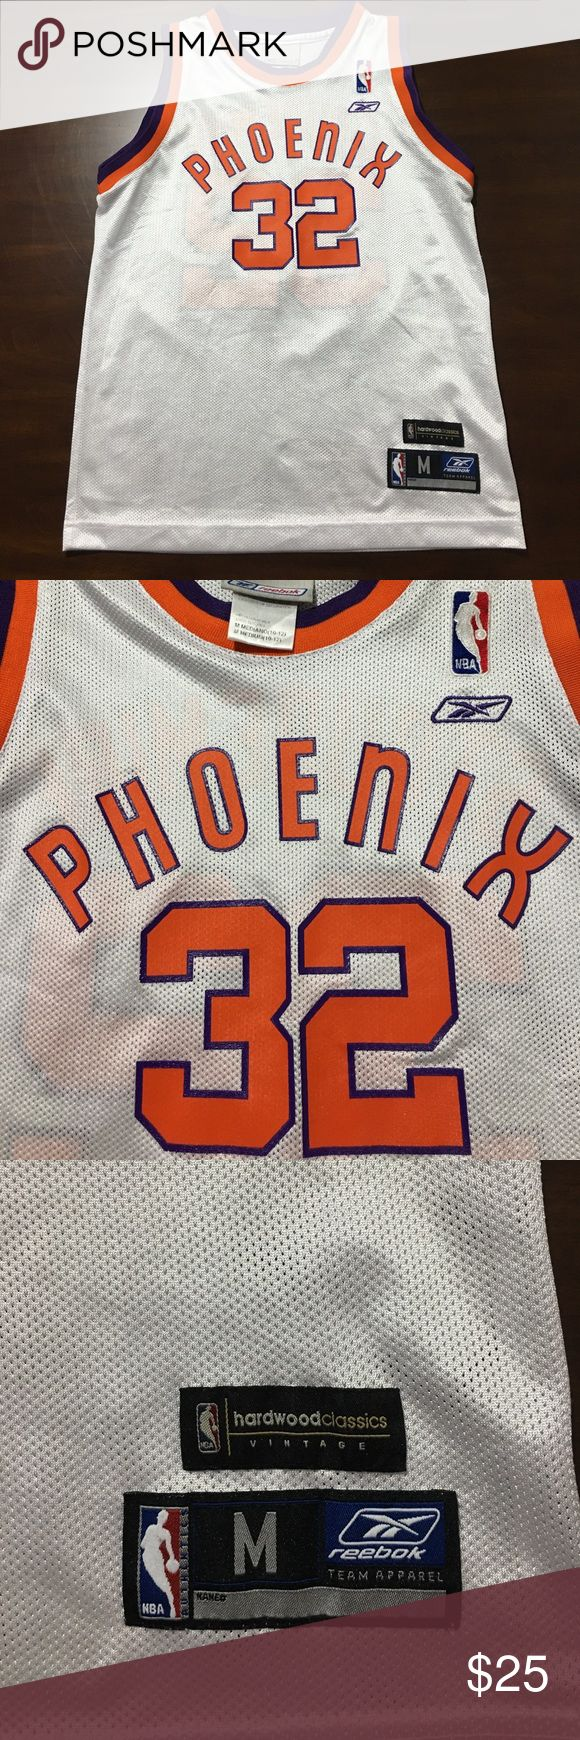 Amare Stoudemire Phoenix Suns Throwback Jersey Suns Stoudemire throwback in size kids M. Reebok Shirts & Tops Tank Tops